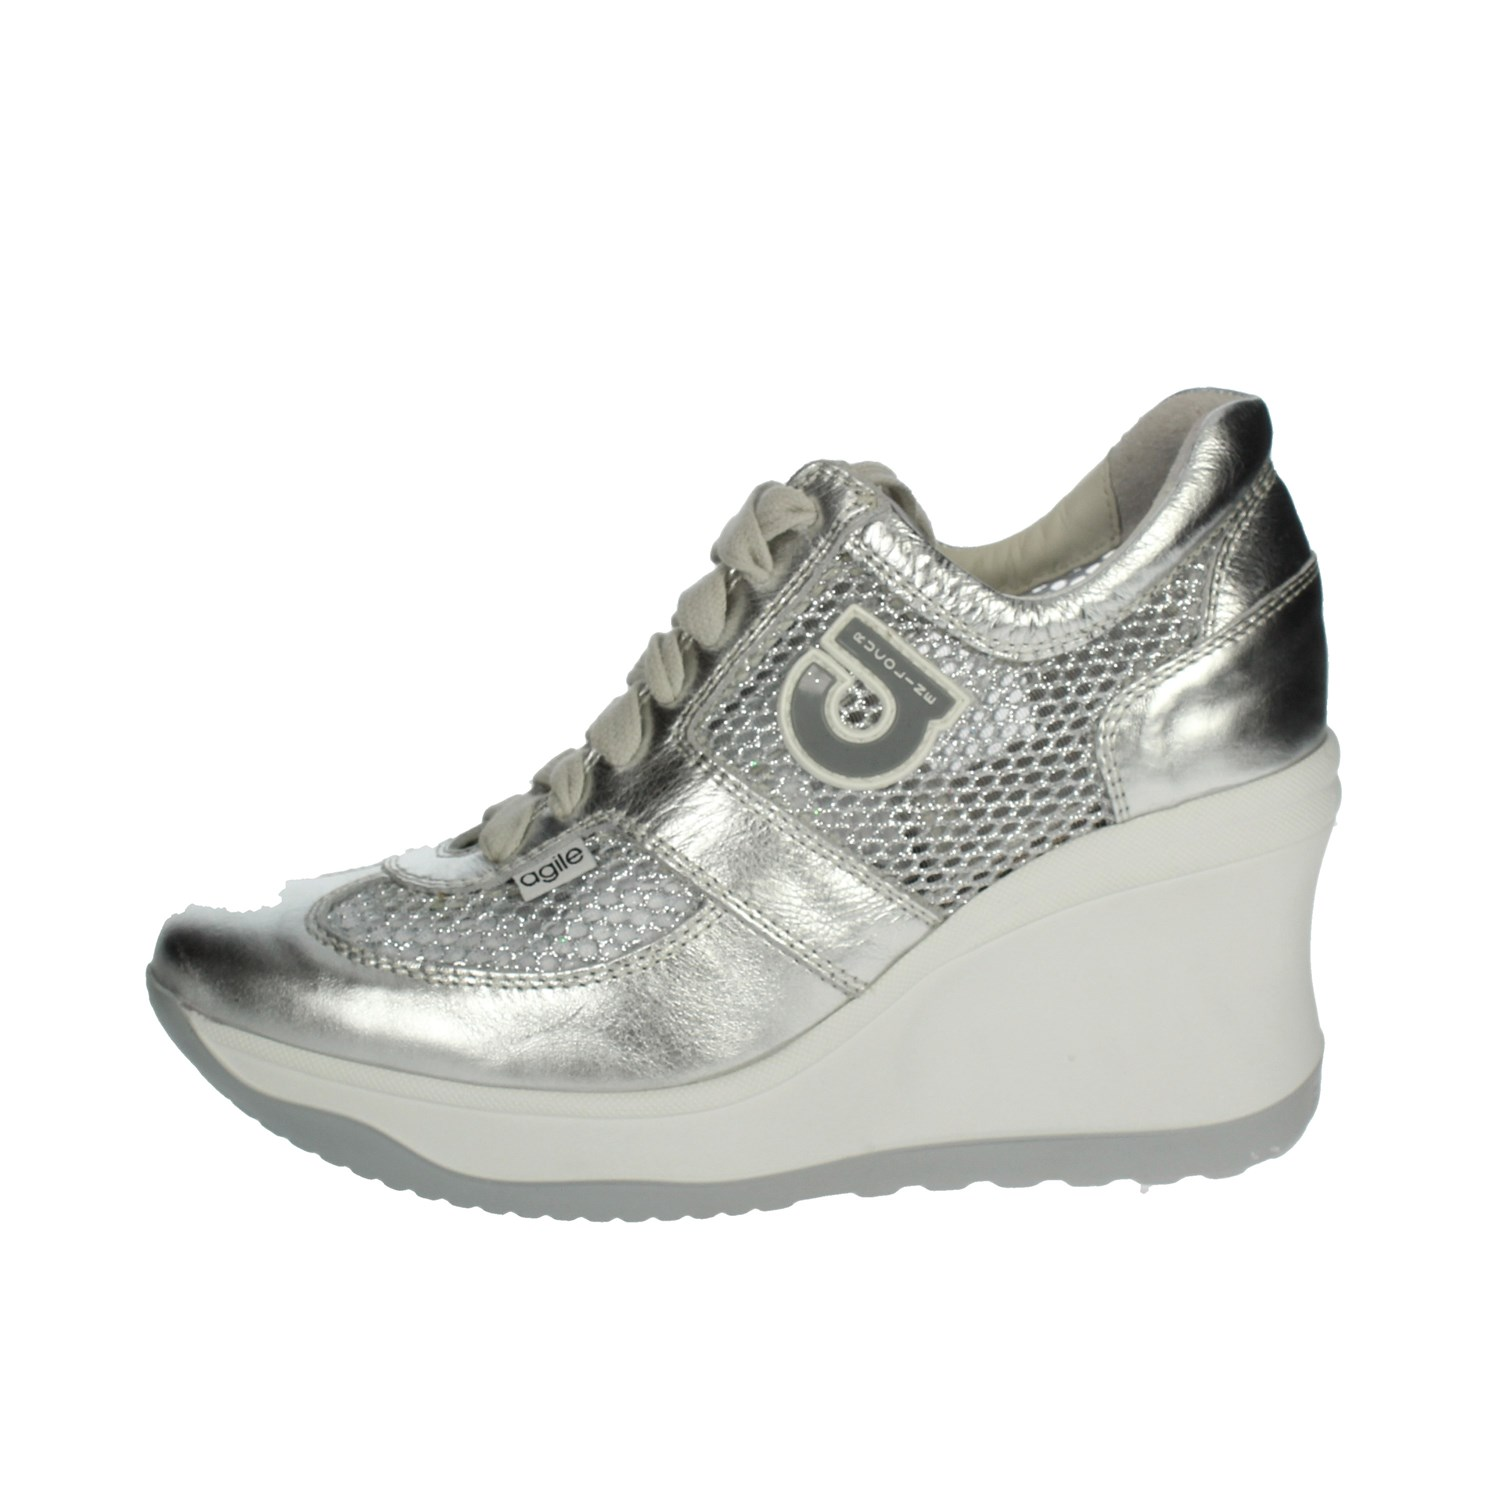 sports shoes 5d1b9 6fcf4 Details about Agile By Rucoline Donna 1800 Sneakers Primavera/Estate  Pelle/tessuto